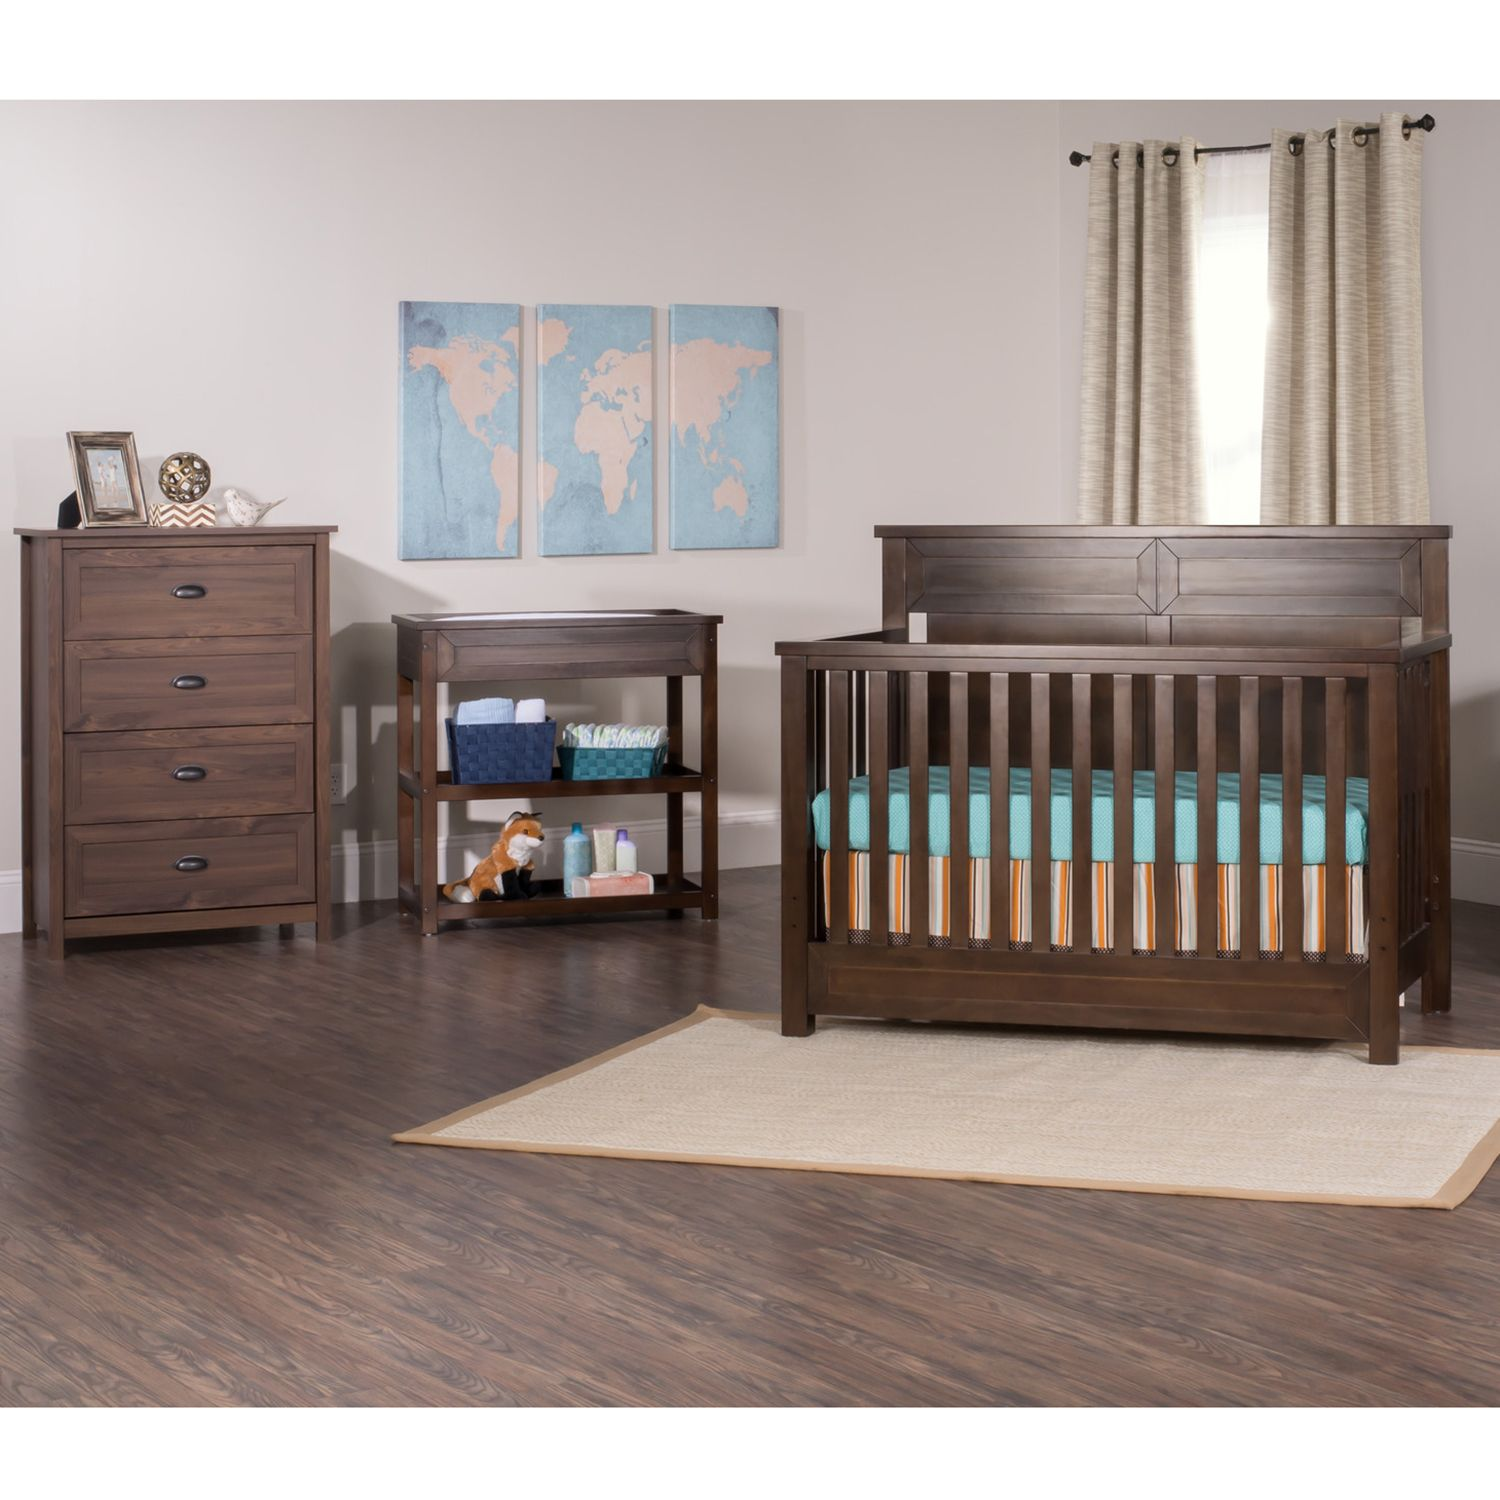 Child Craft Abbott Nursery Furniture Coordinates